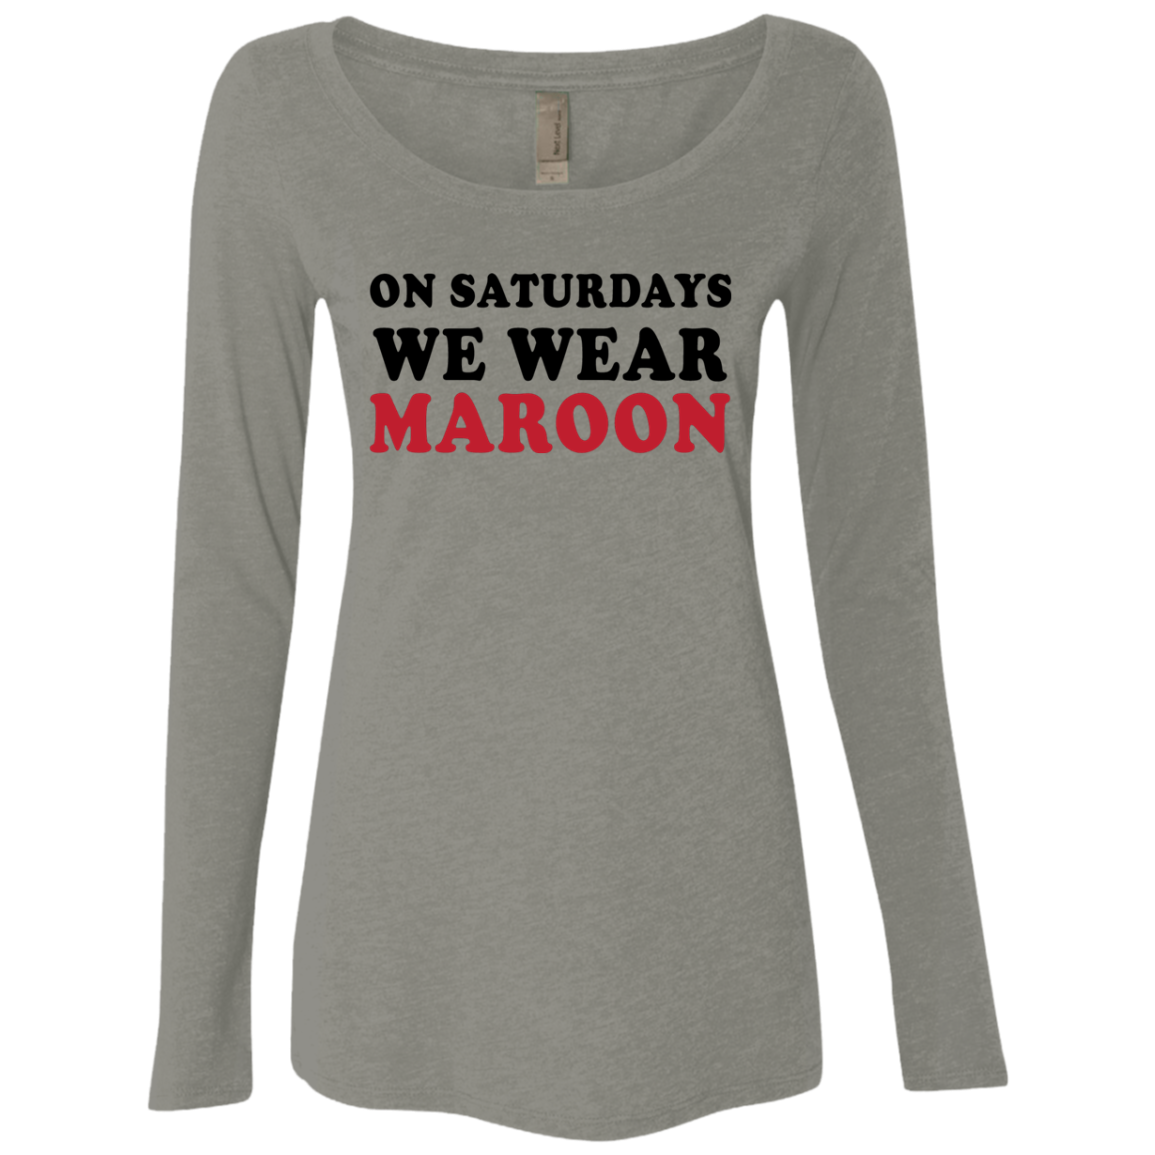 On Saturdays We Wear Maroon Women's Long Sleeve Tee